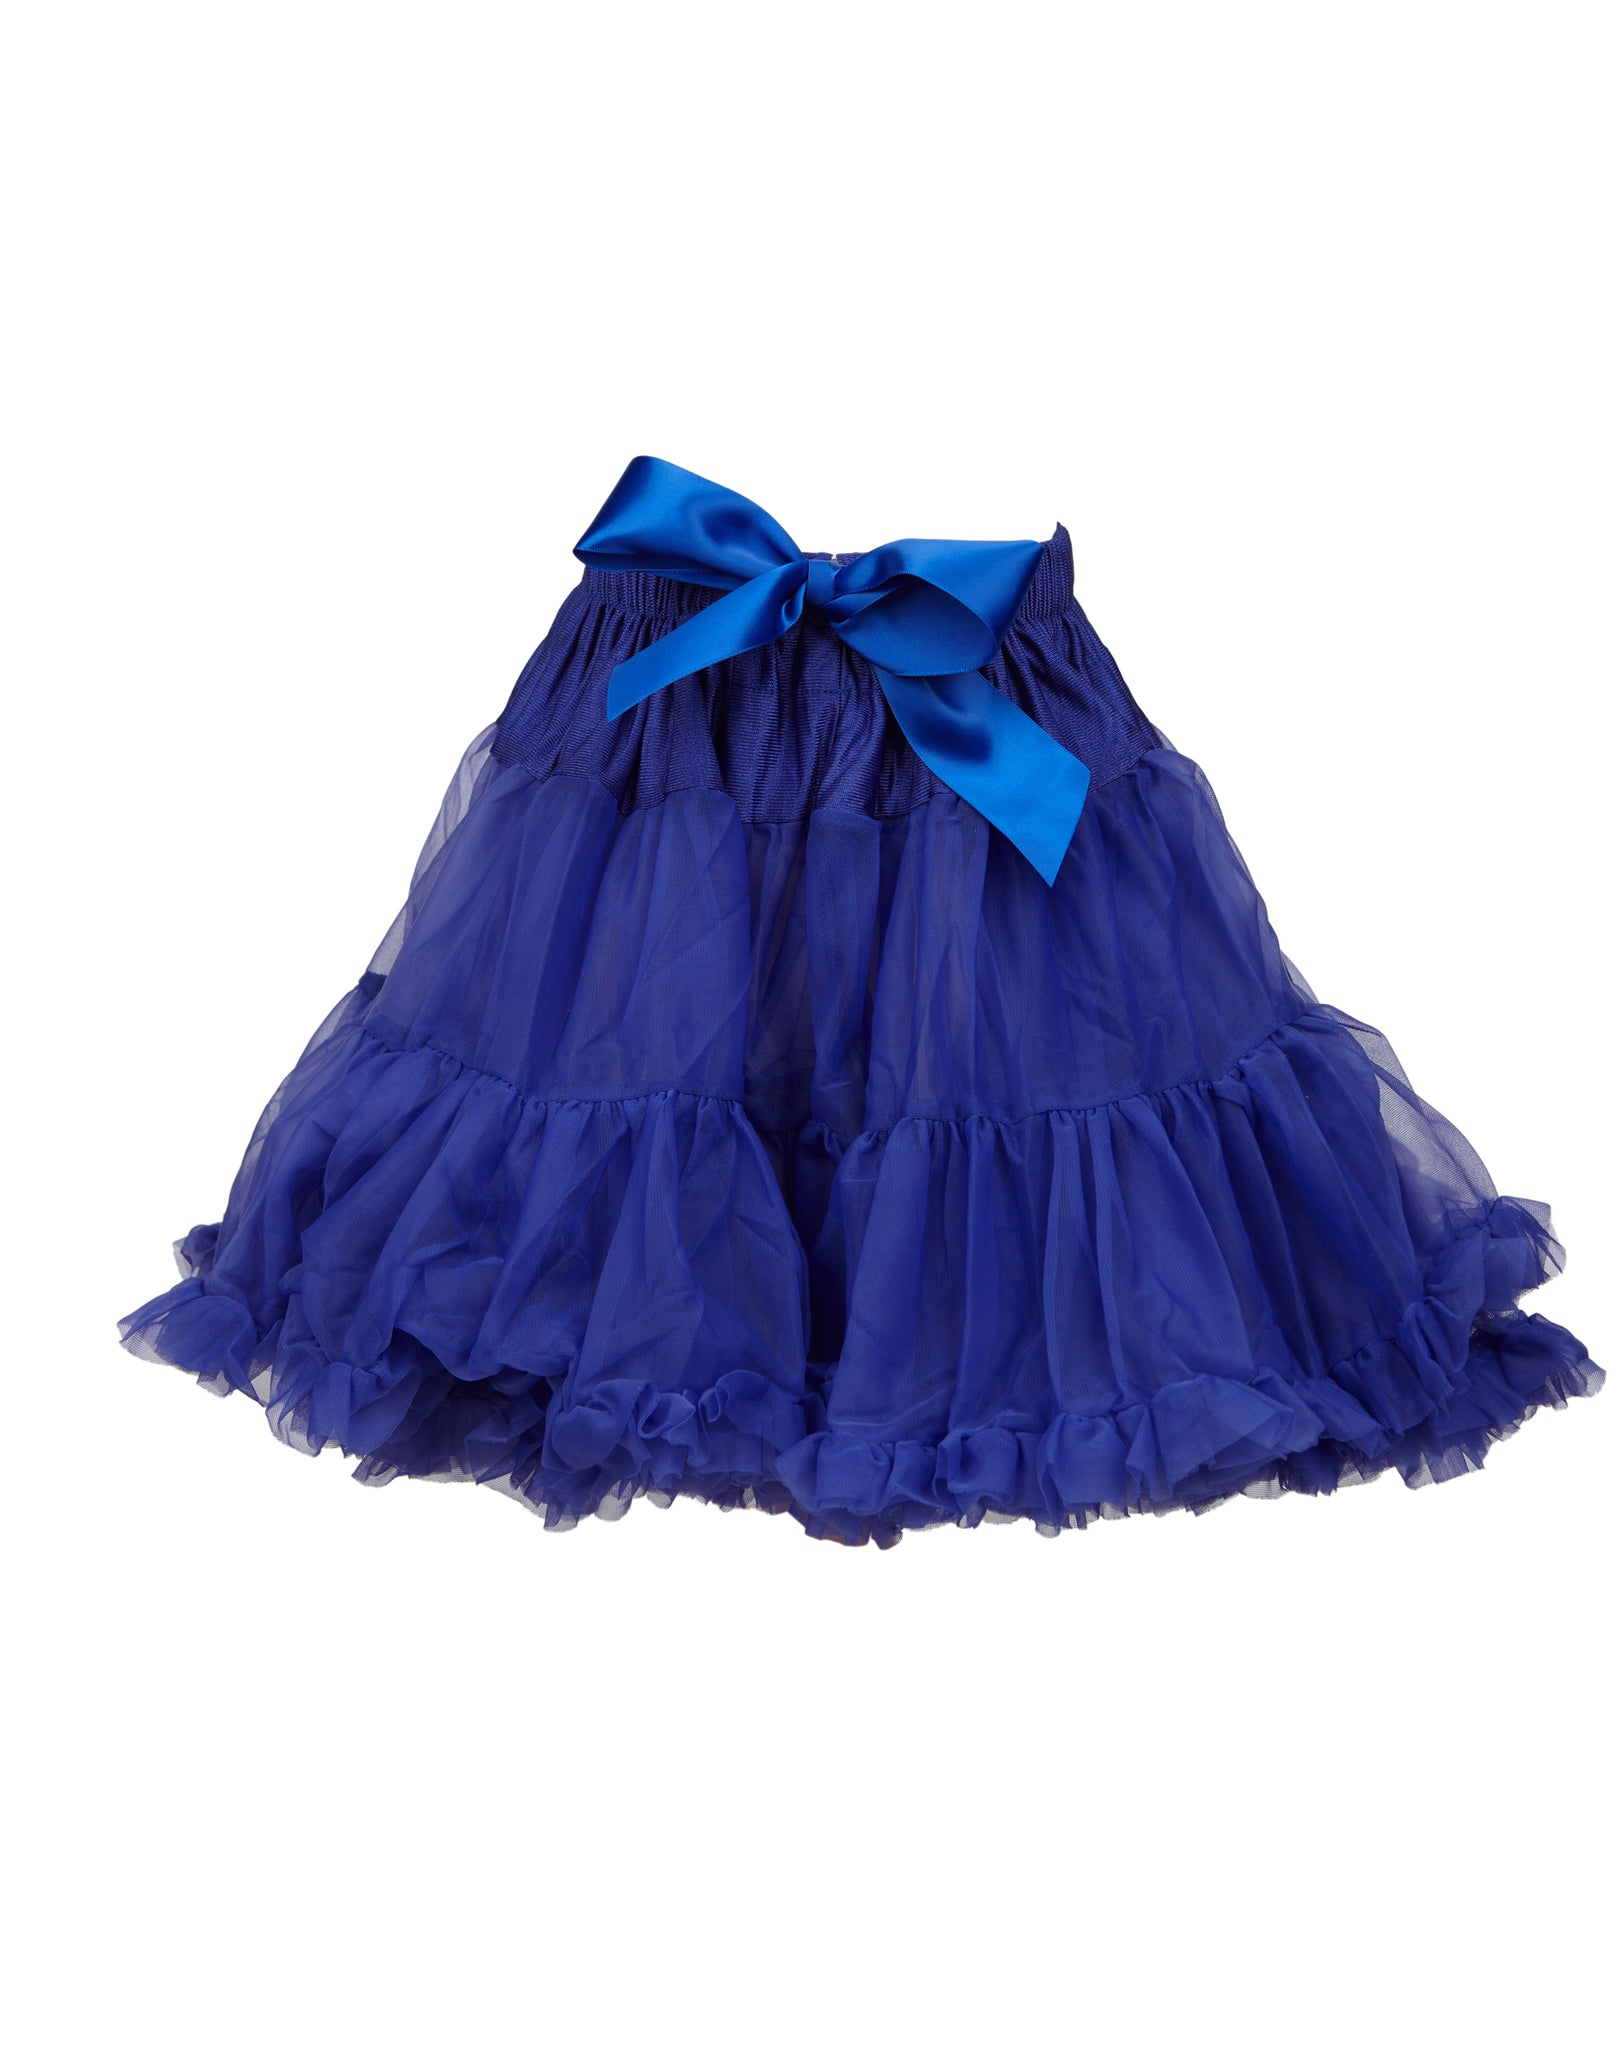 Children's Petticoat - Royal Blue - Palava